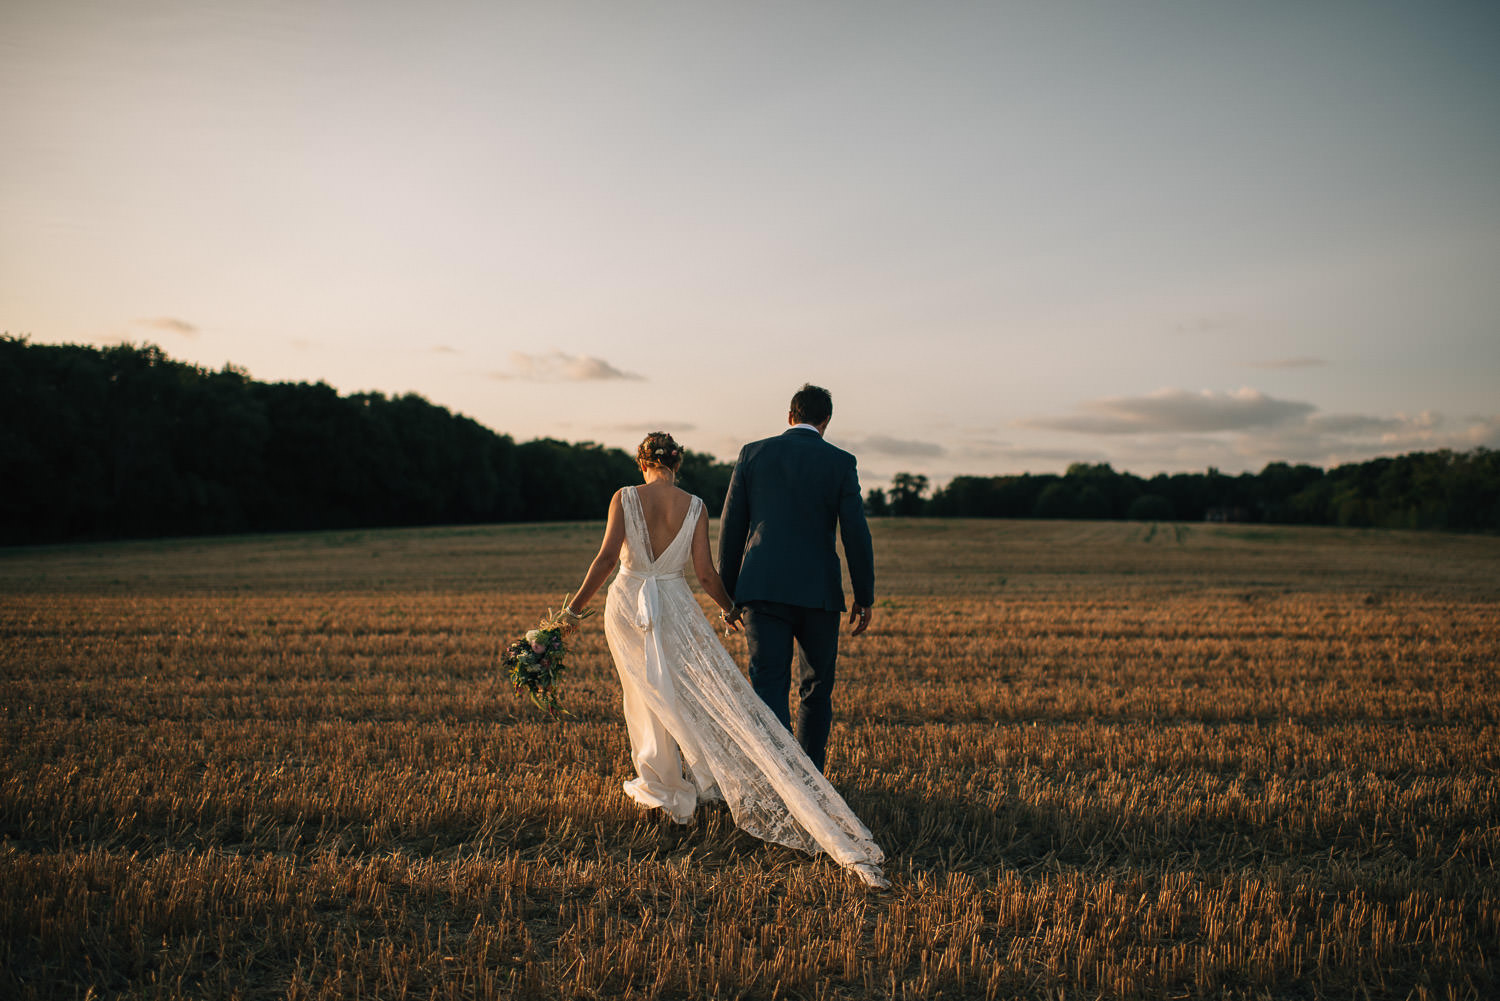 festival sunset wedding by creative and alternative london wedding photographer the shannons photography